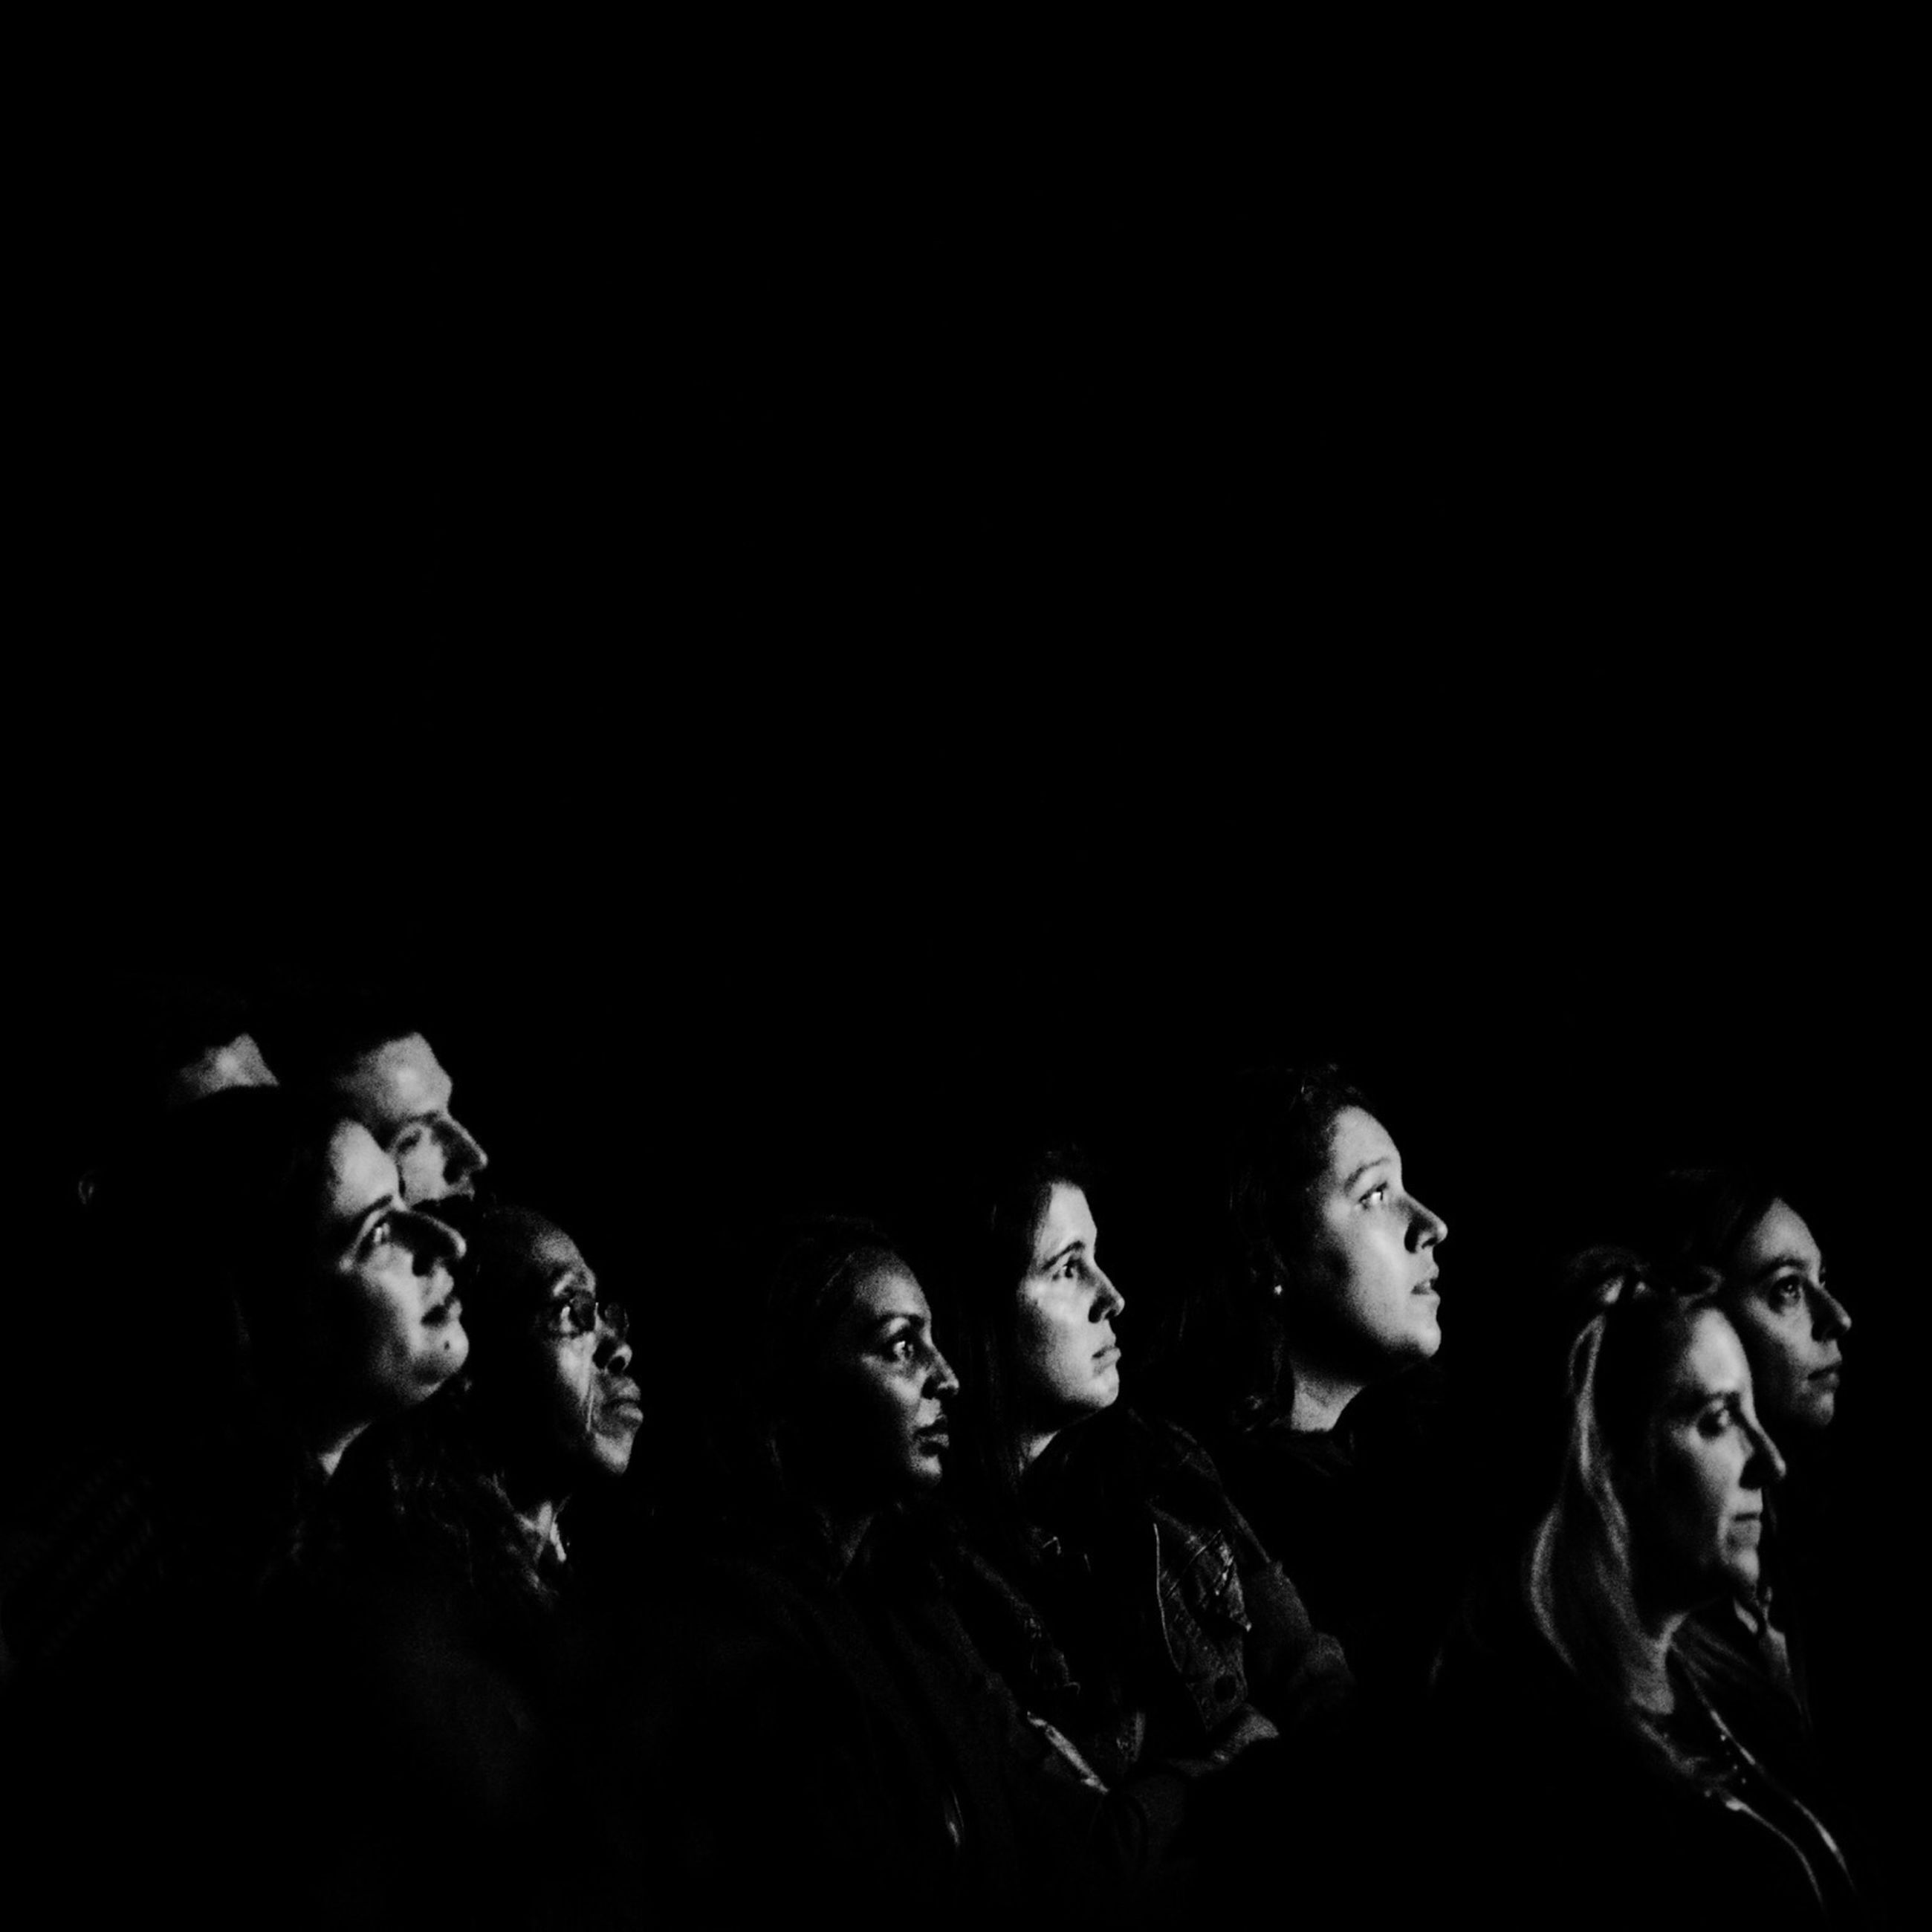 lifestyles, leisure activity, togetherness, men, black background, night, indoors, young adult, studio shot, copy space, young men, standing, dark, person, bonding, front view